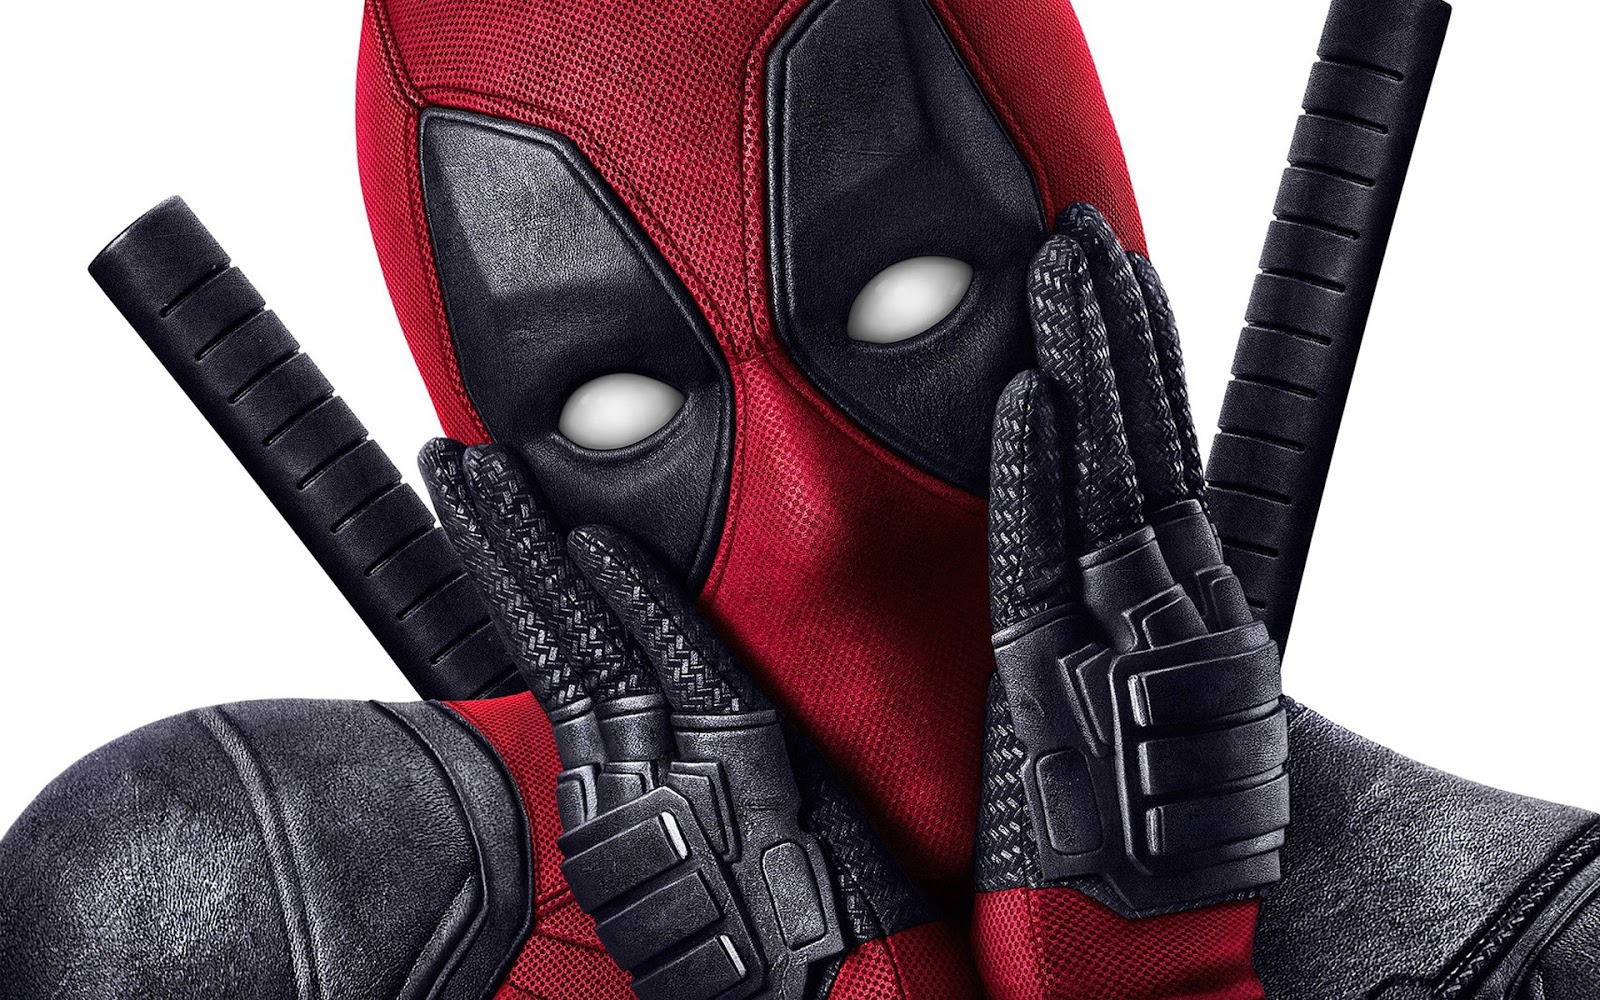 Deadpool Movie Wallpaper 60539 1600x1000 px HDWallSourcecom